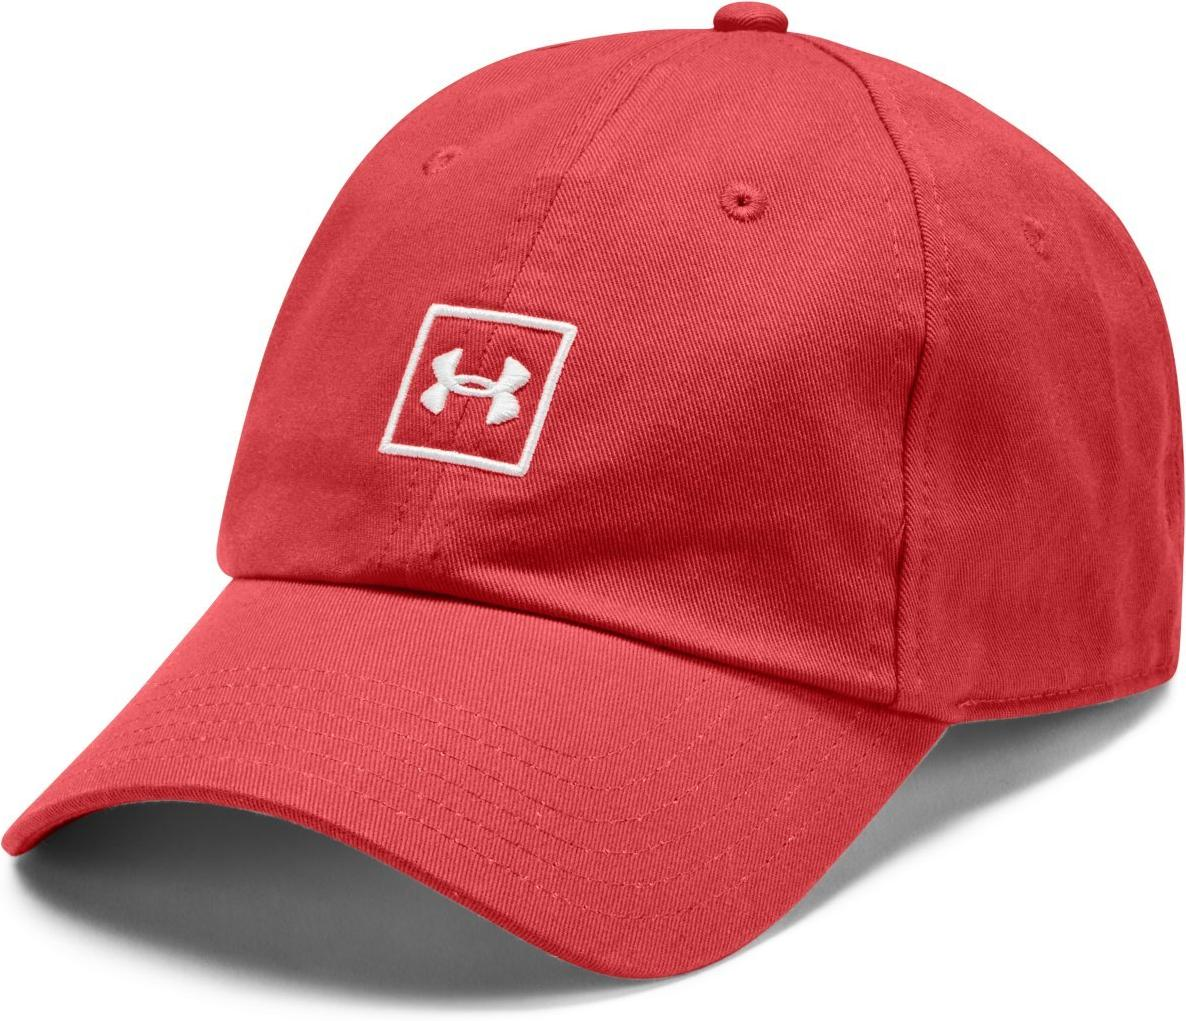 Sapca Under Armour washed cotton cap